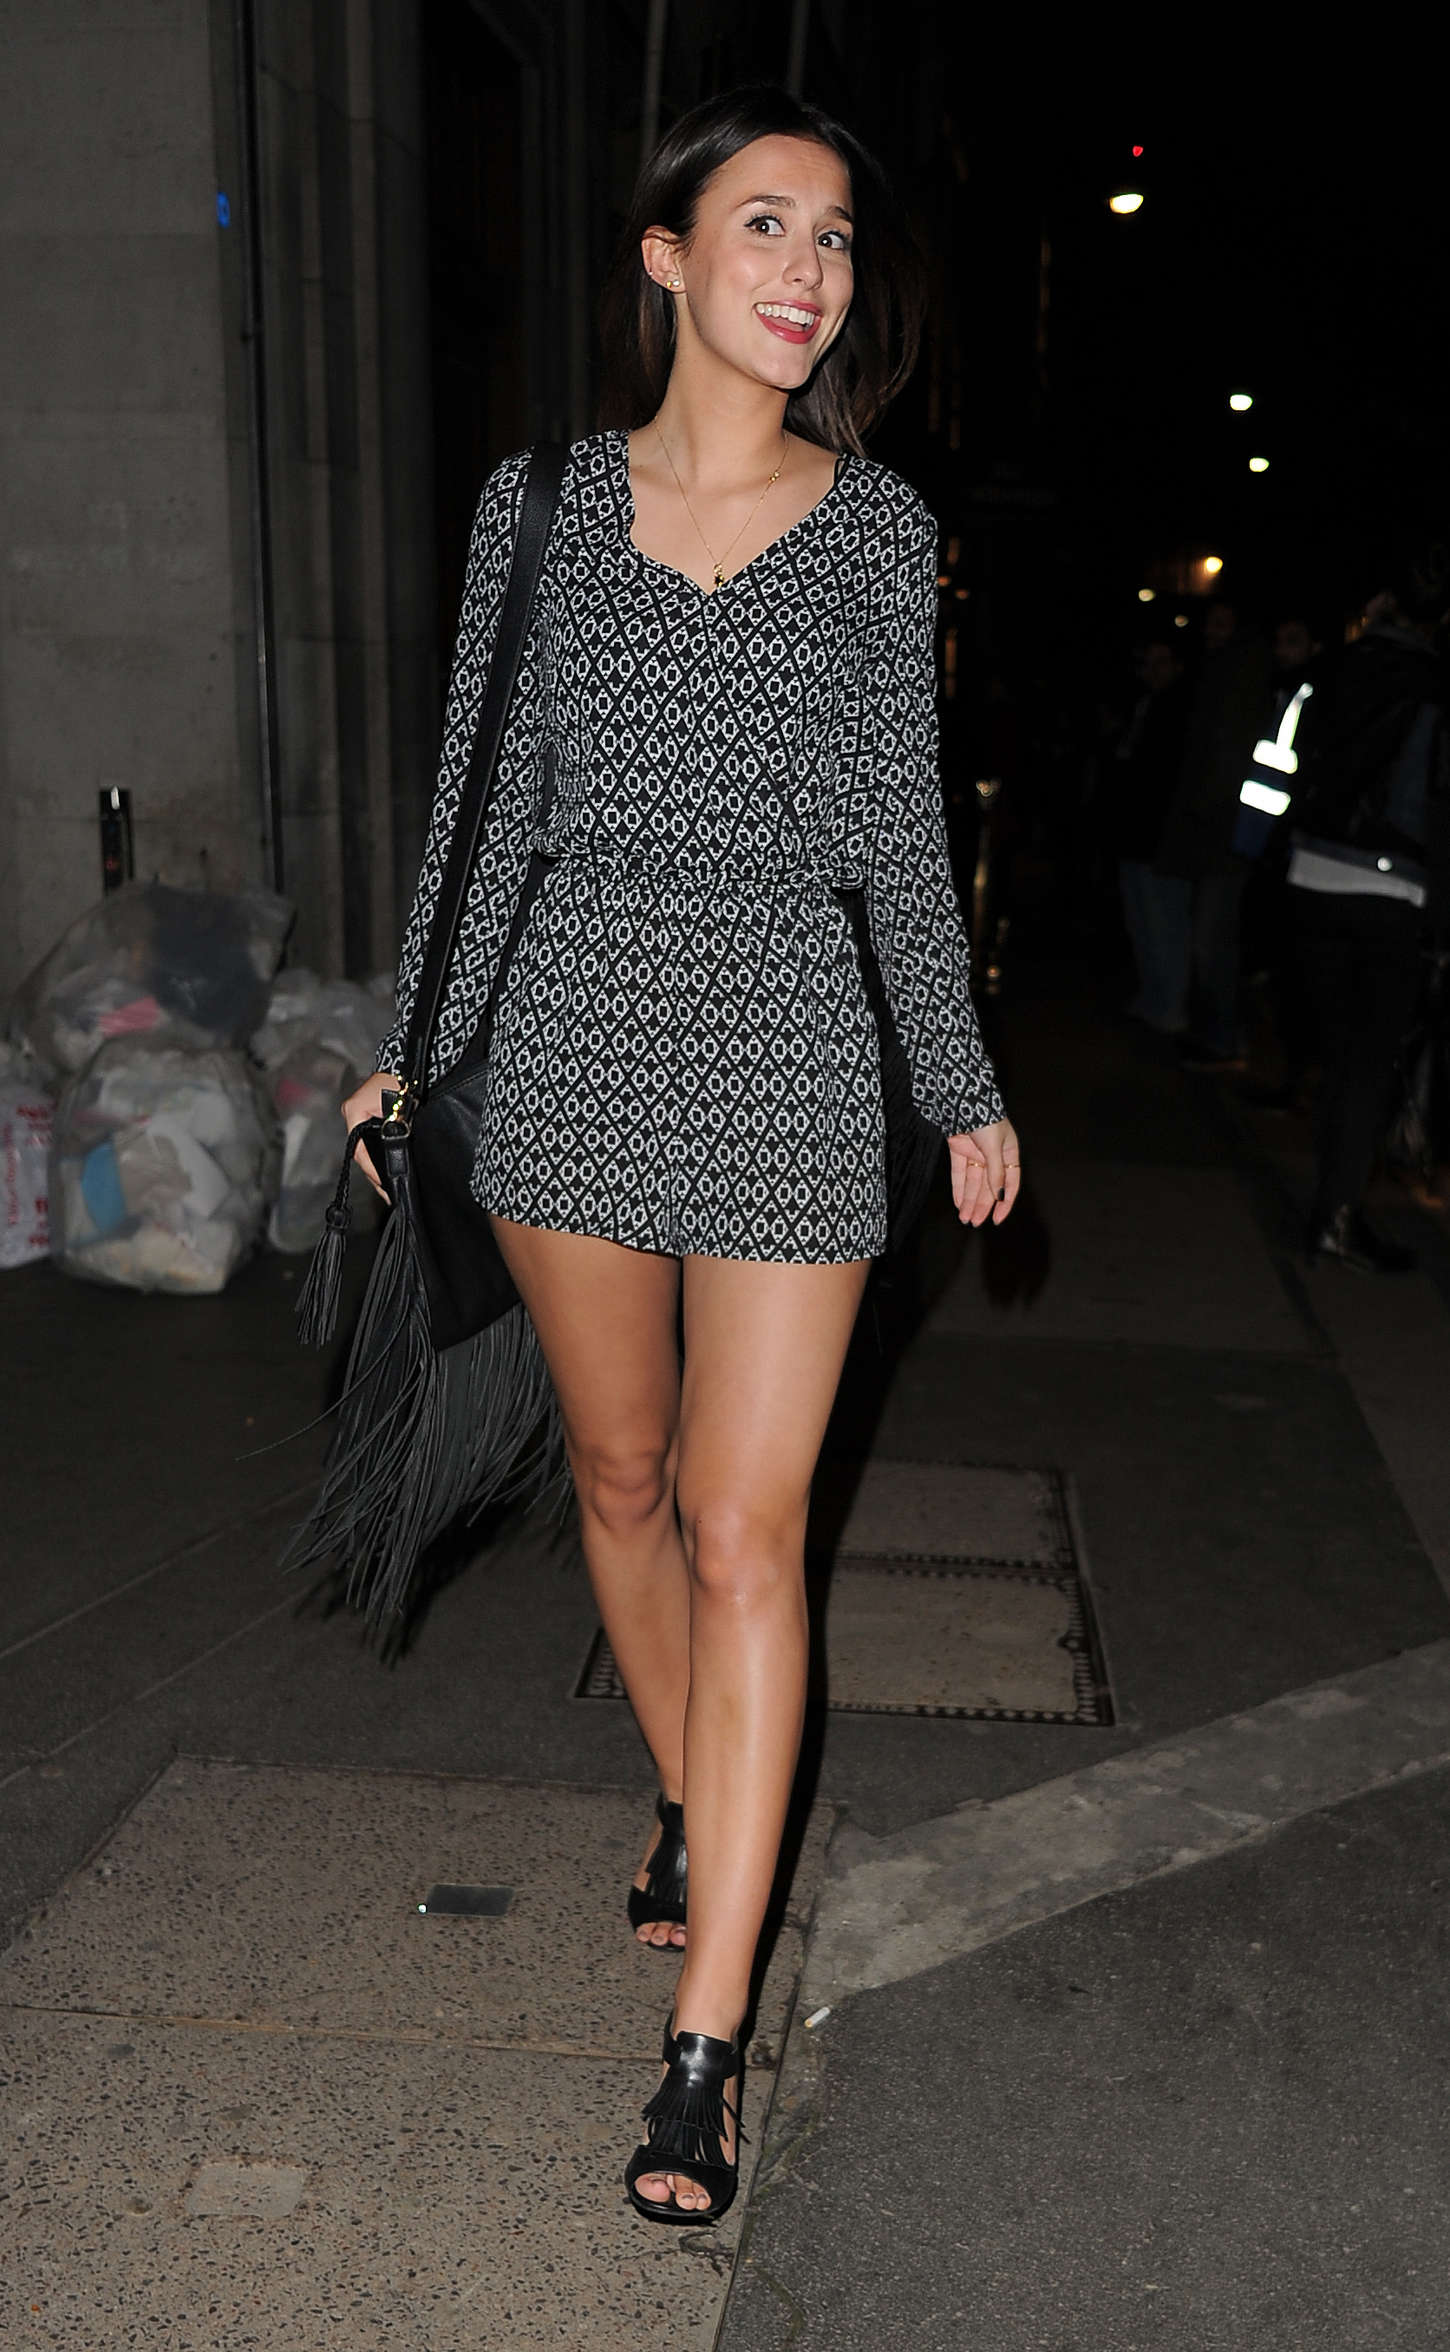 Lucy Watson The Sun Bizarre Party in London